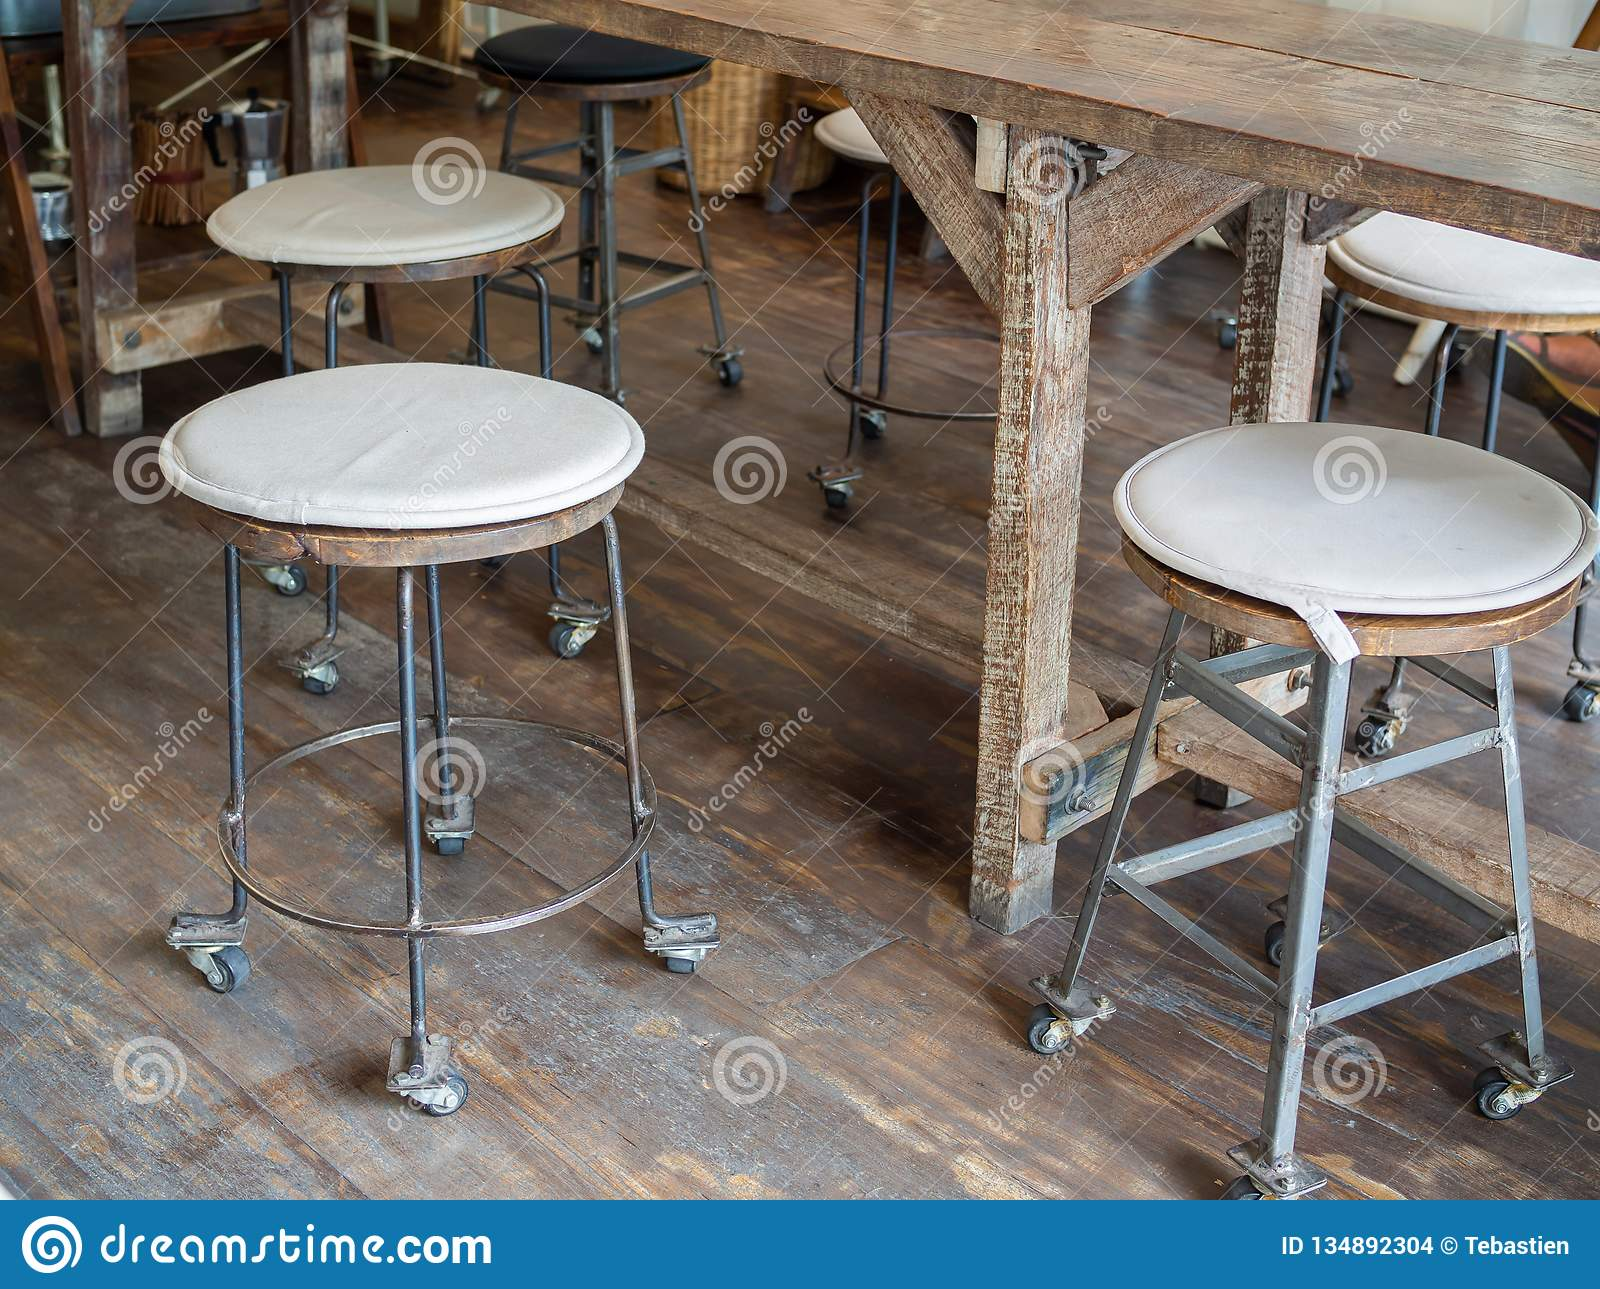 Old Wooden Bar Stools On Wooden Floor In Cafe Retro Style Stock